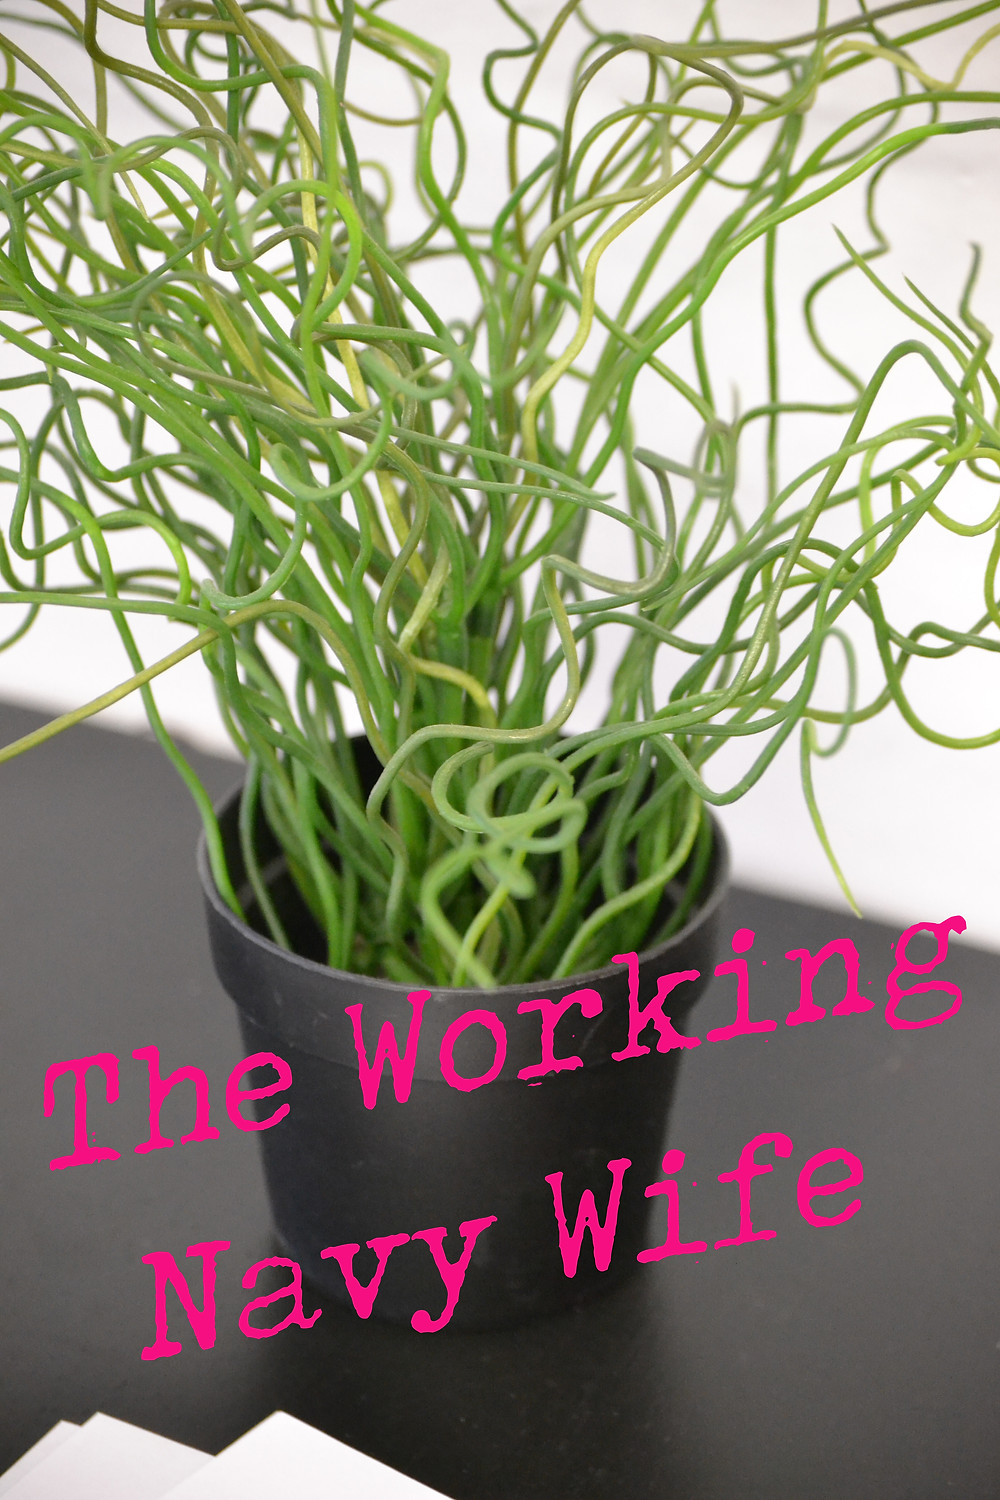 working navy wife plant graphic